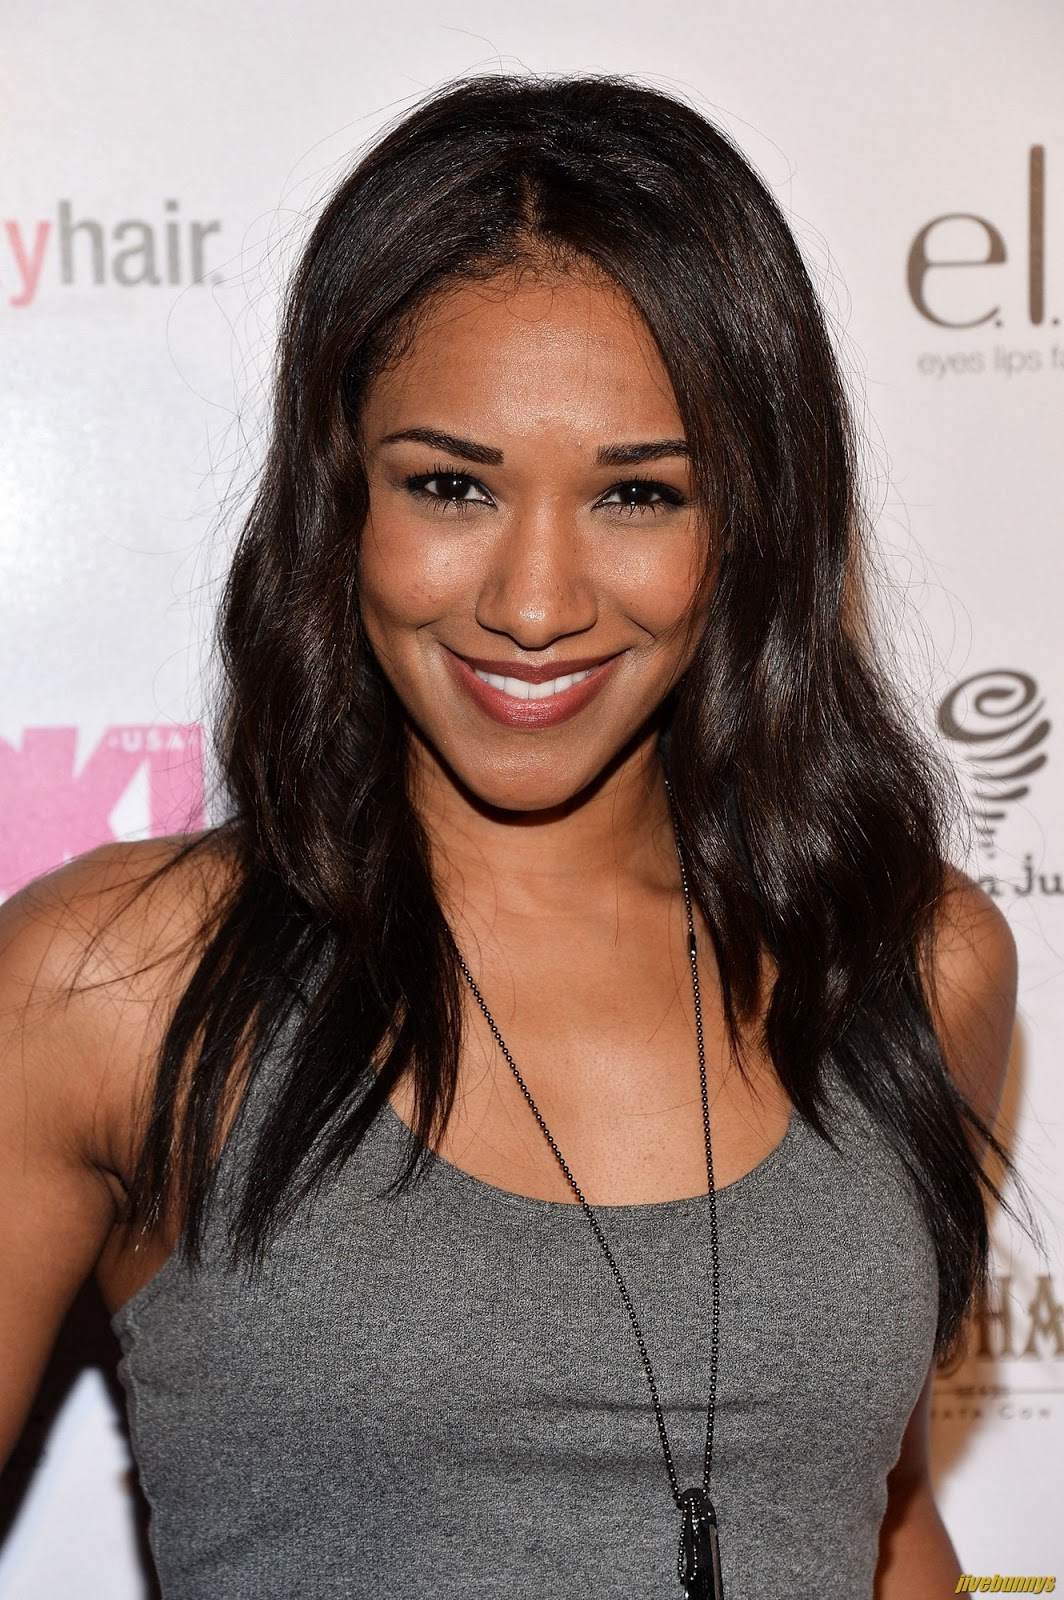 ¿Cuánto mide Candice Patton? - Real height Candice_Patton_9600242